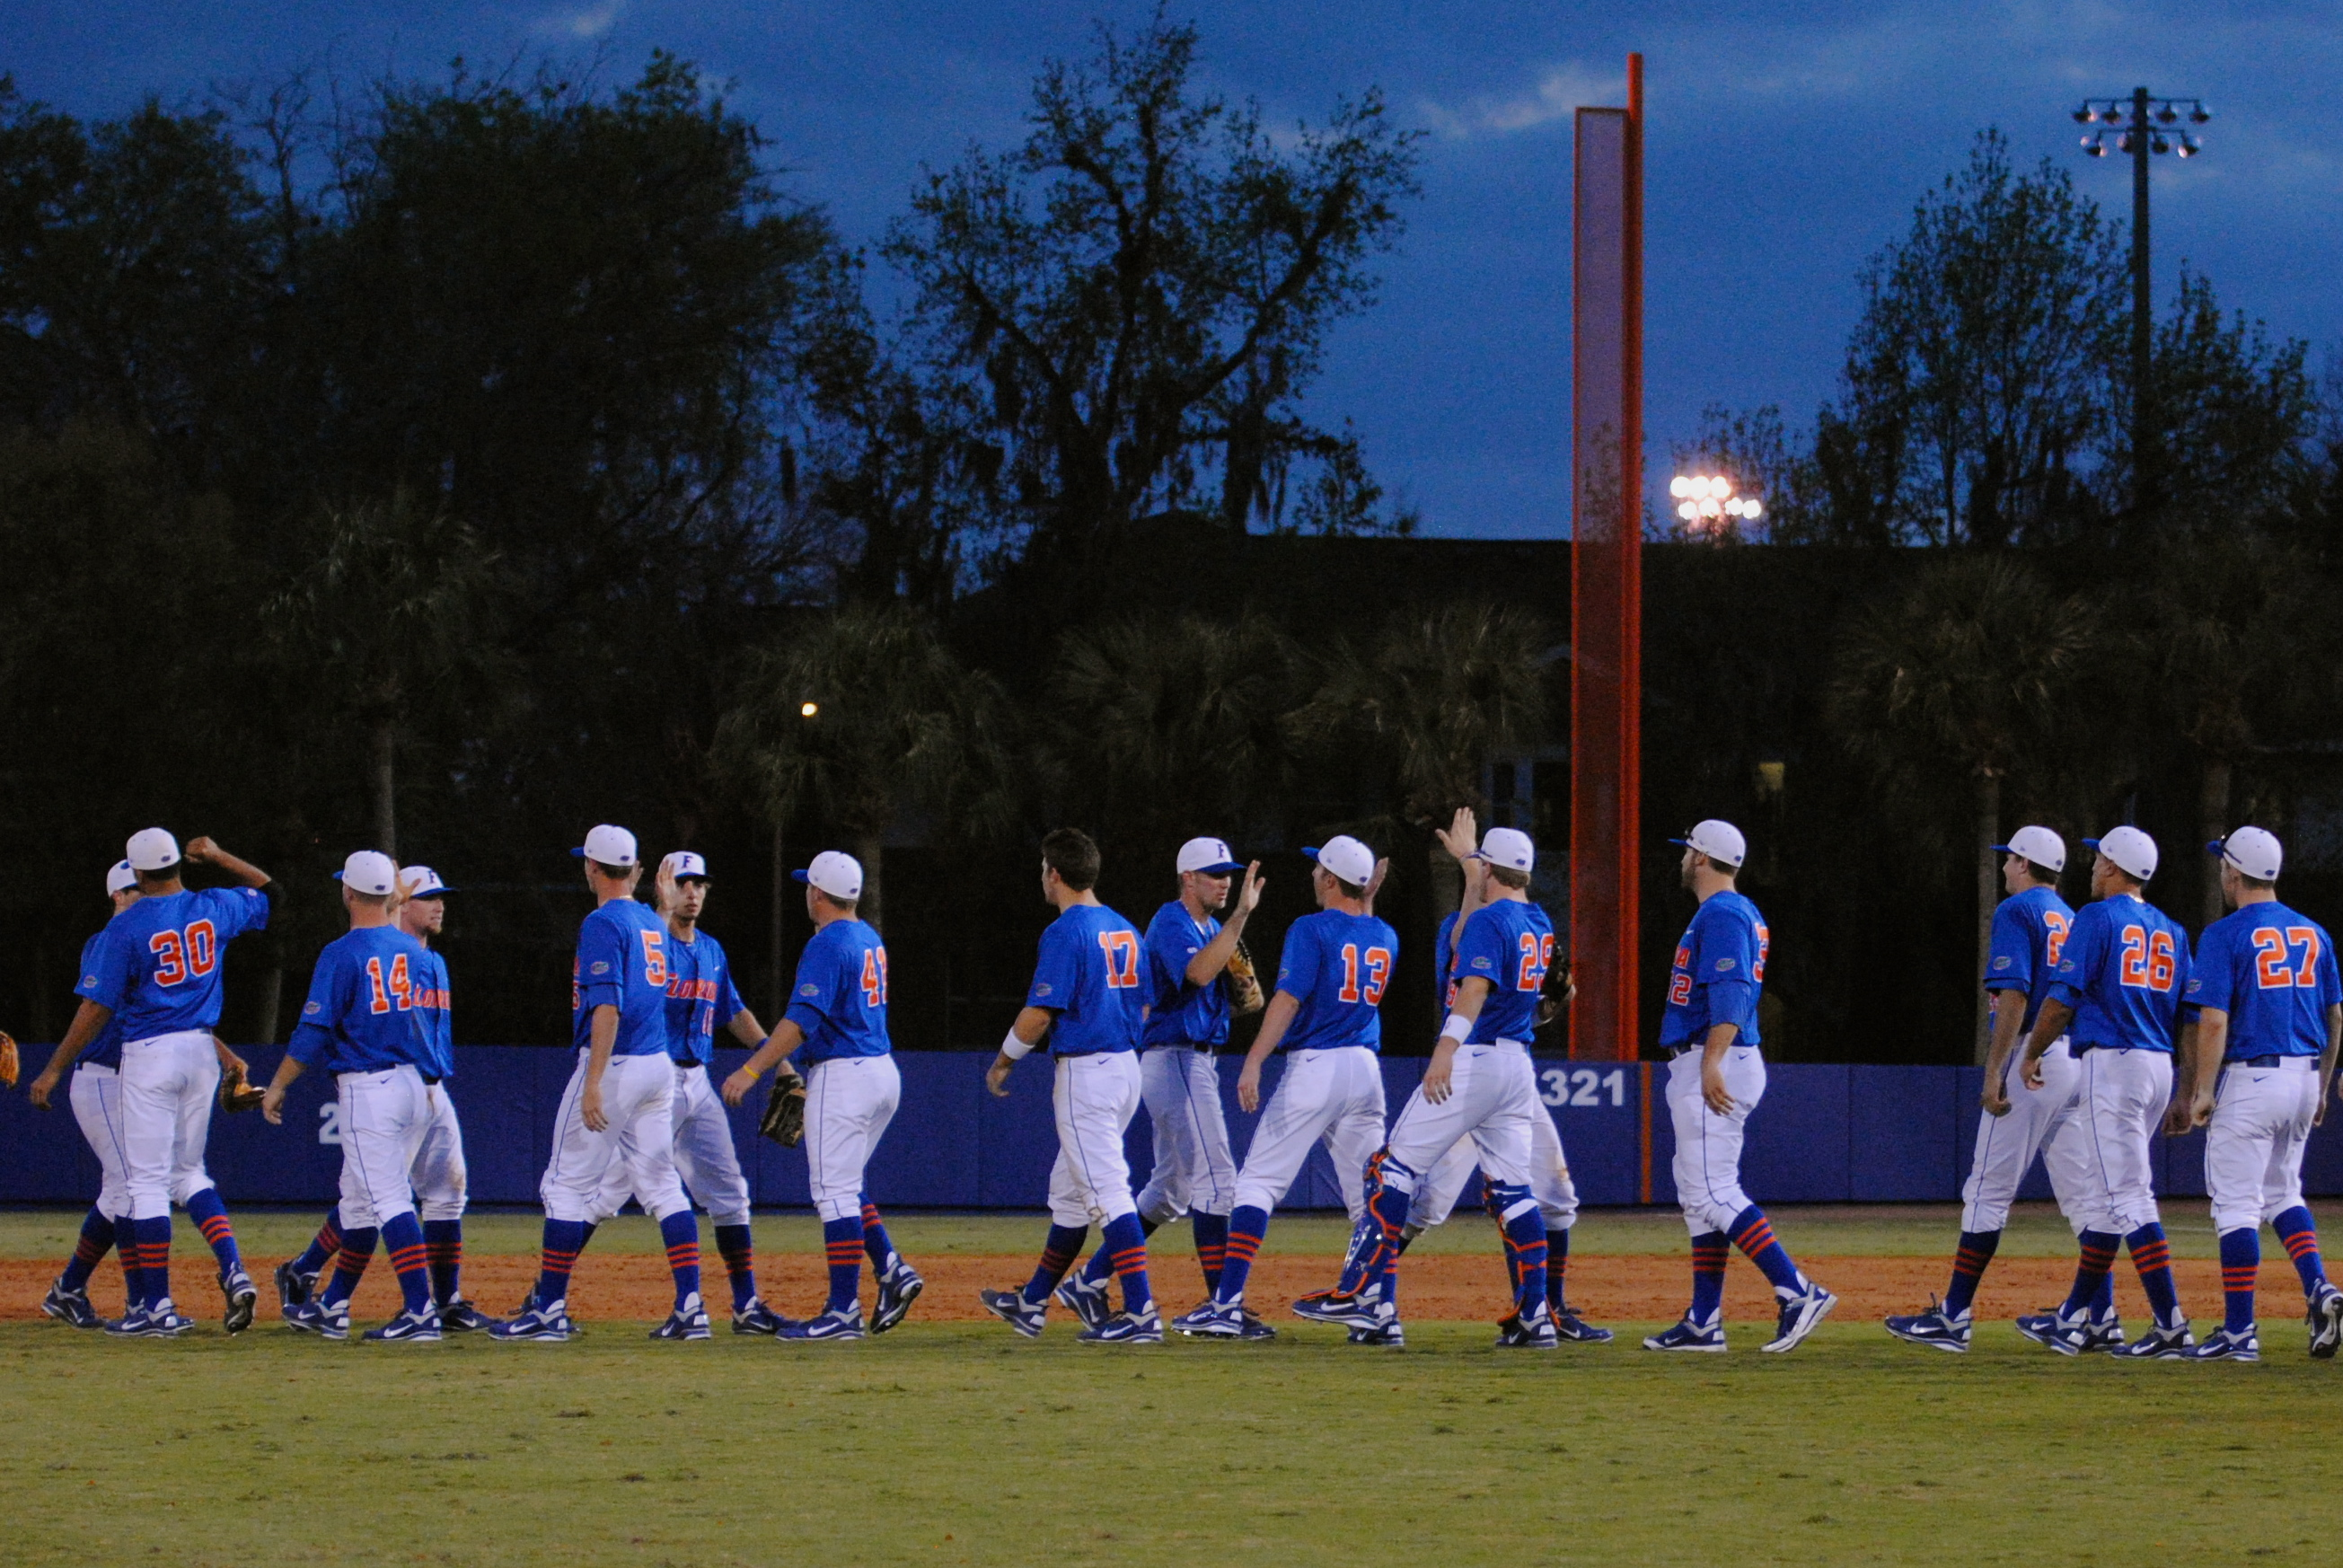 Gators Baseball team celebrates their victory against Cal State Fullerton, 5-2